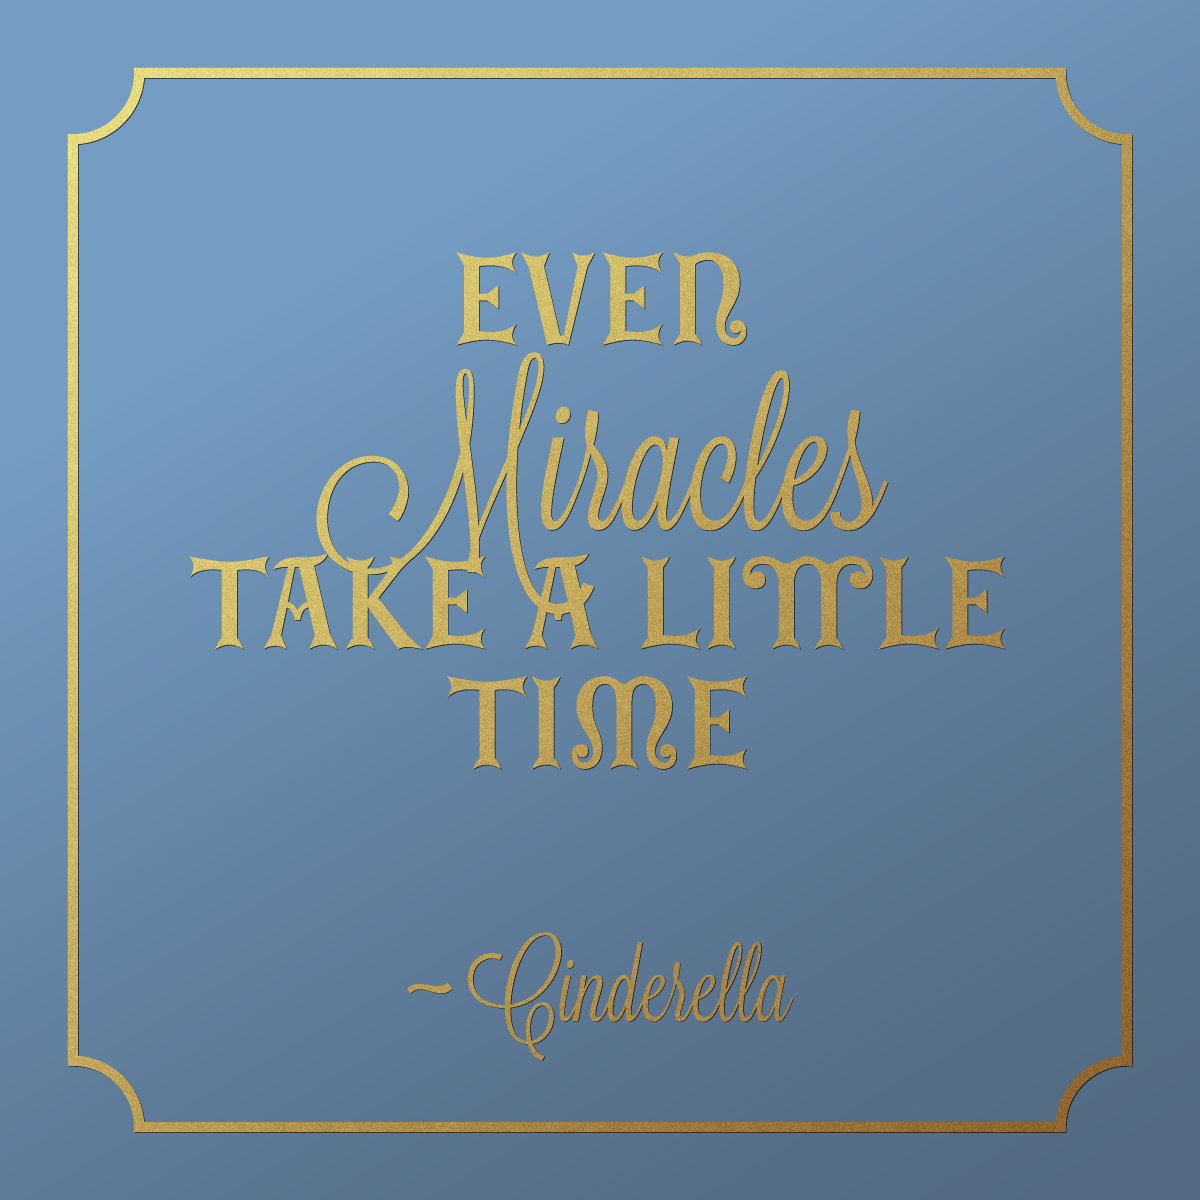 Quote Cinderella Even miracles take a little time